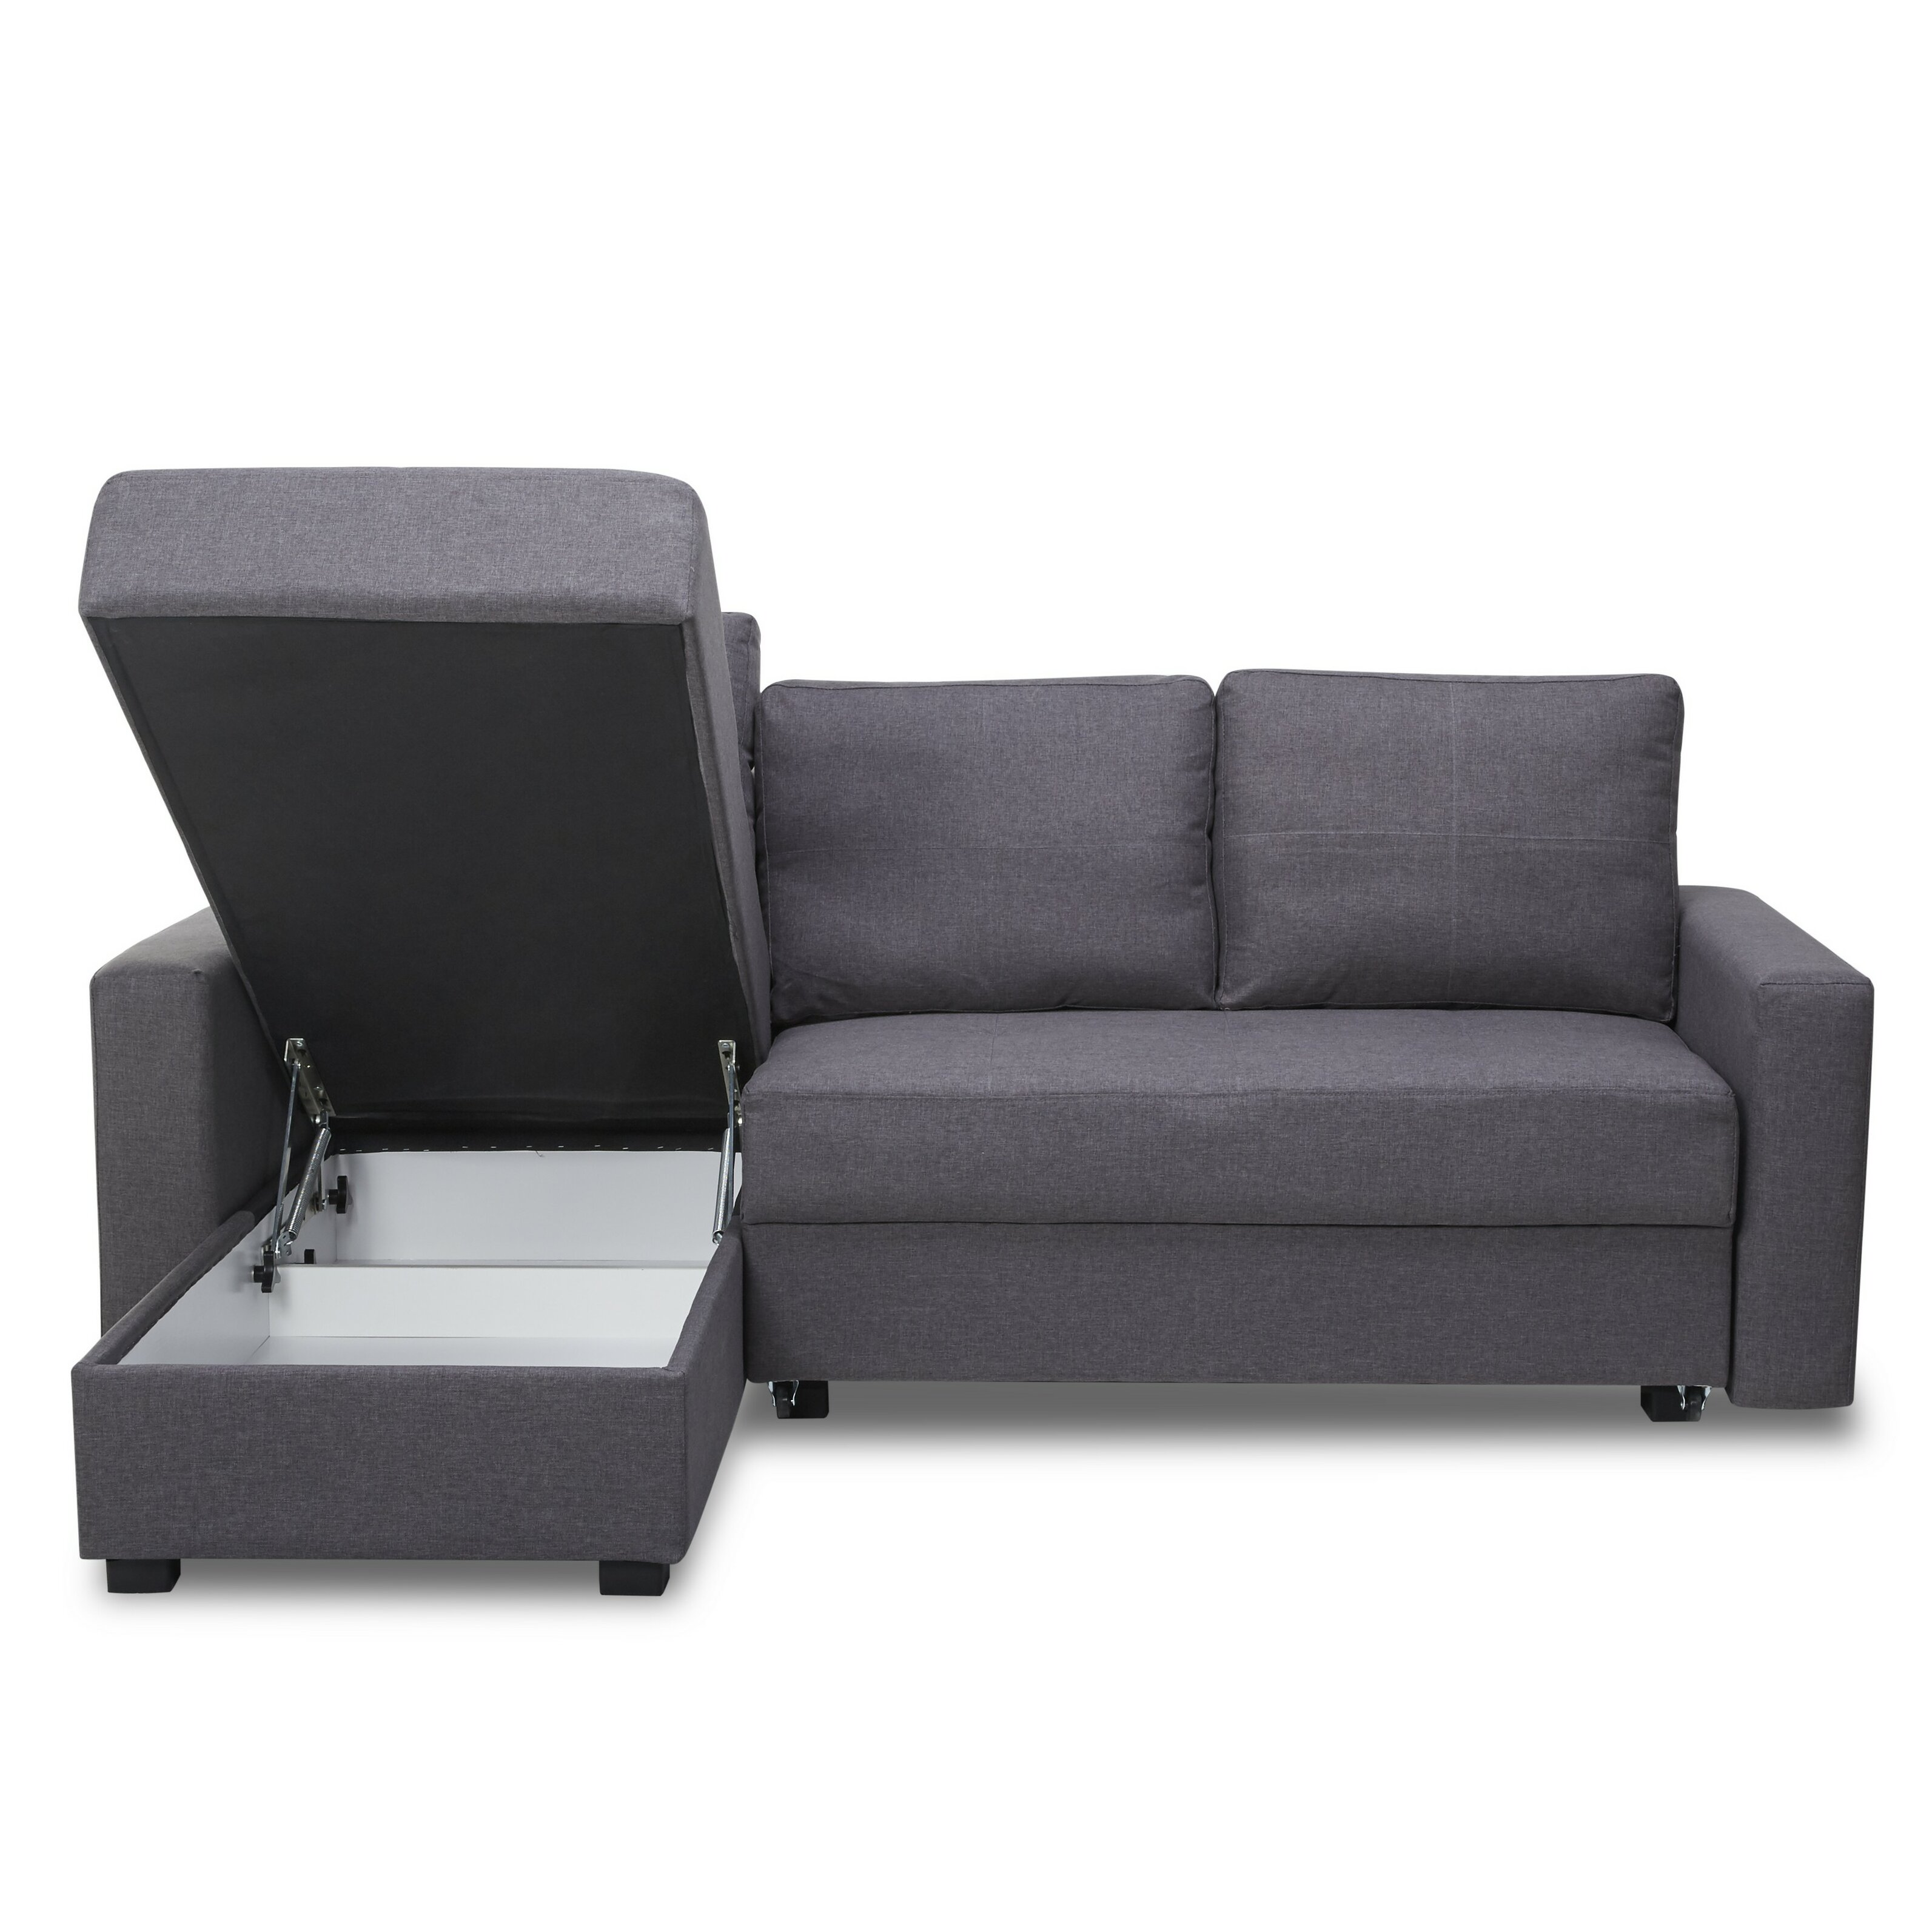 Madrid 3 Seater Sofa Bed With Storage Chaise